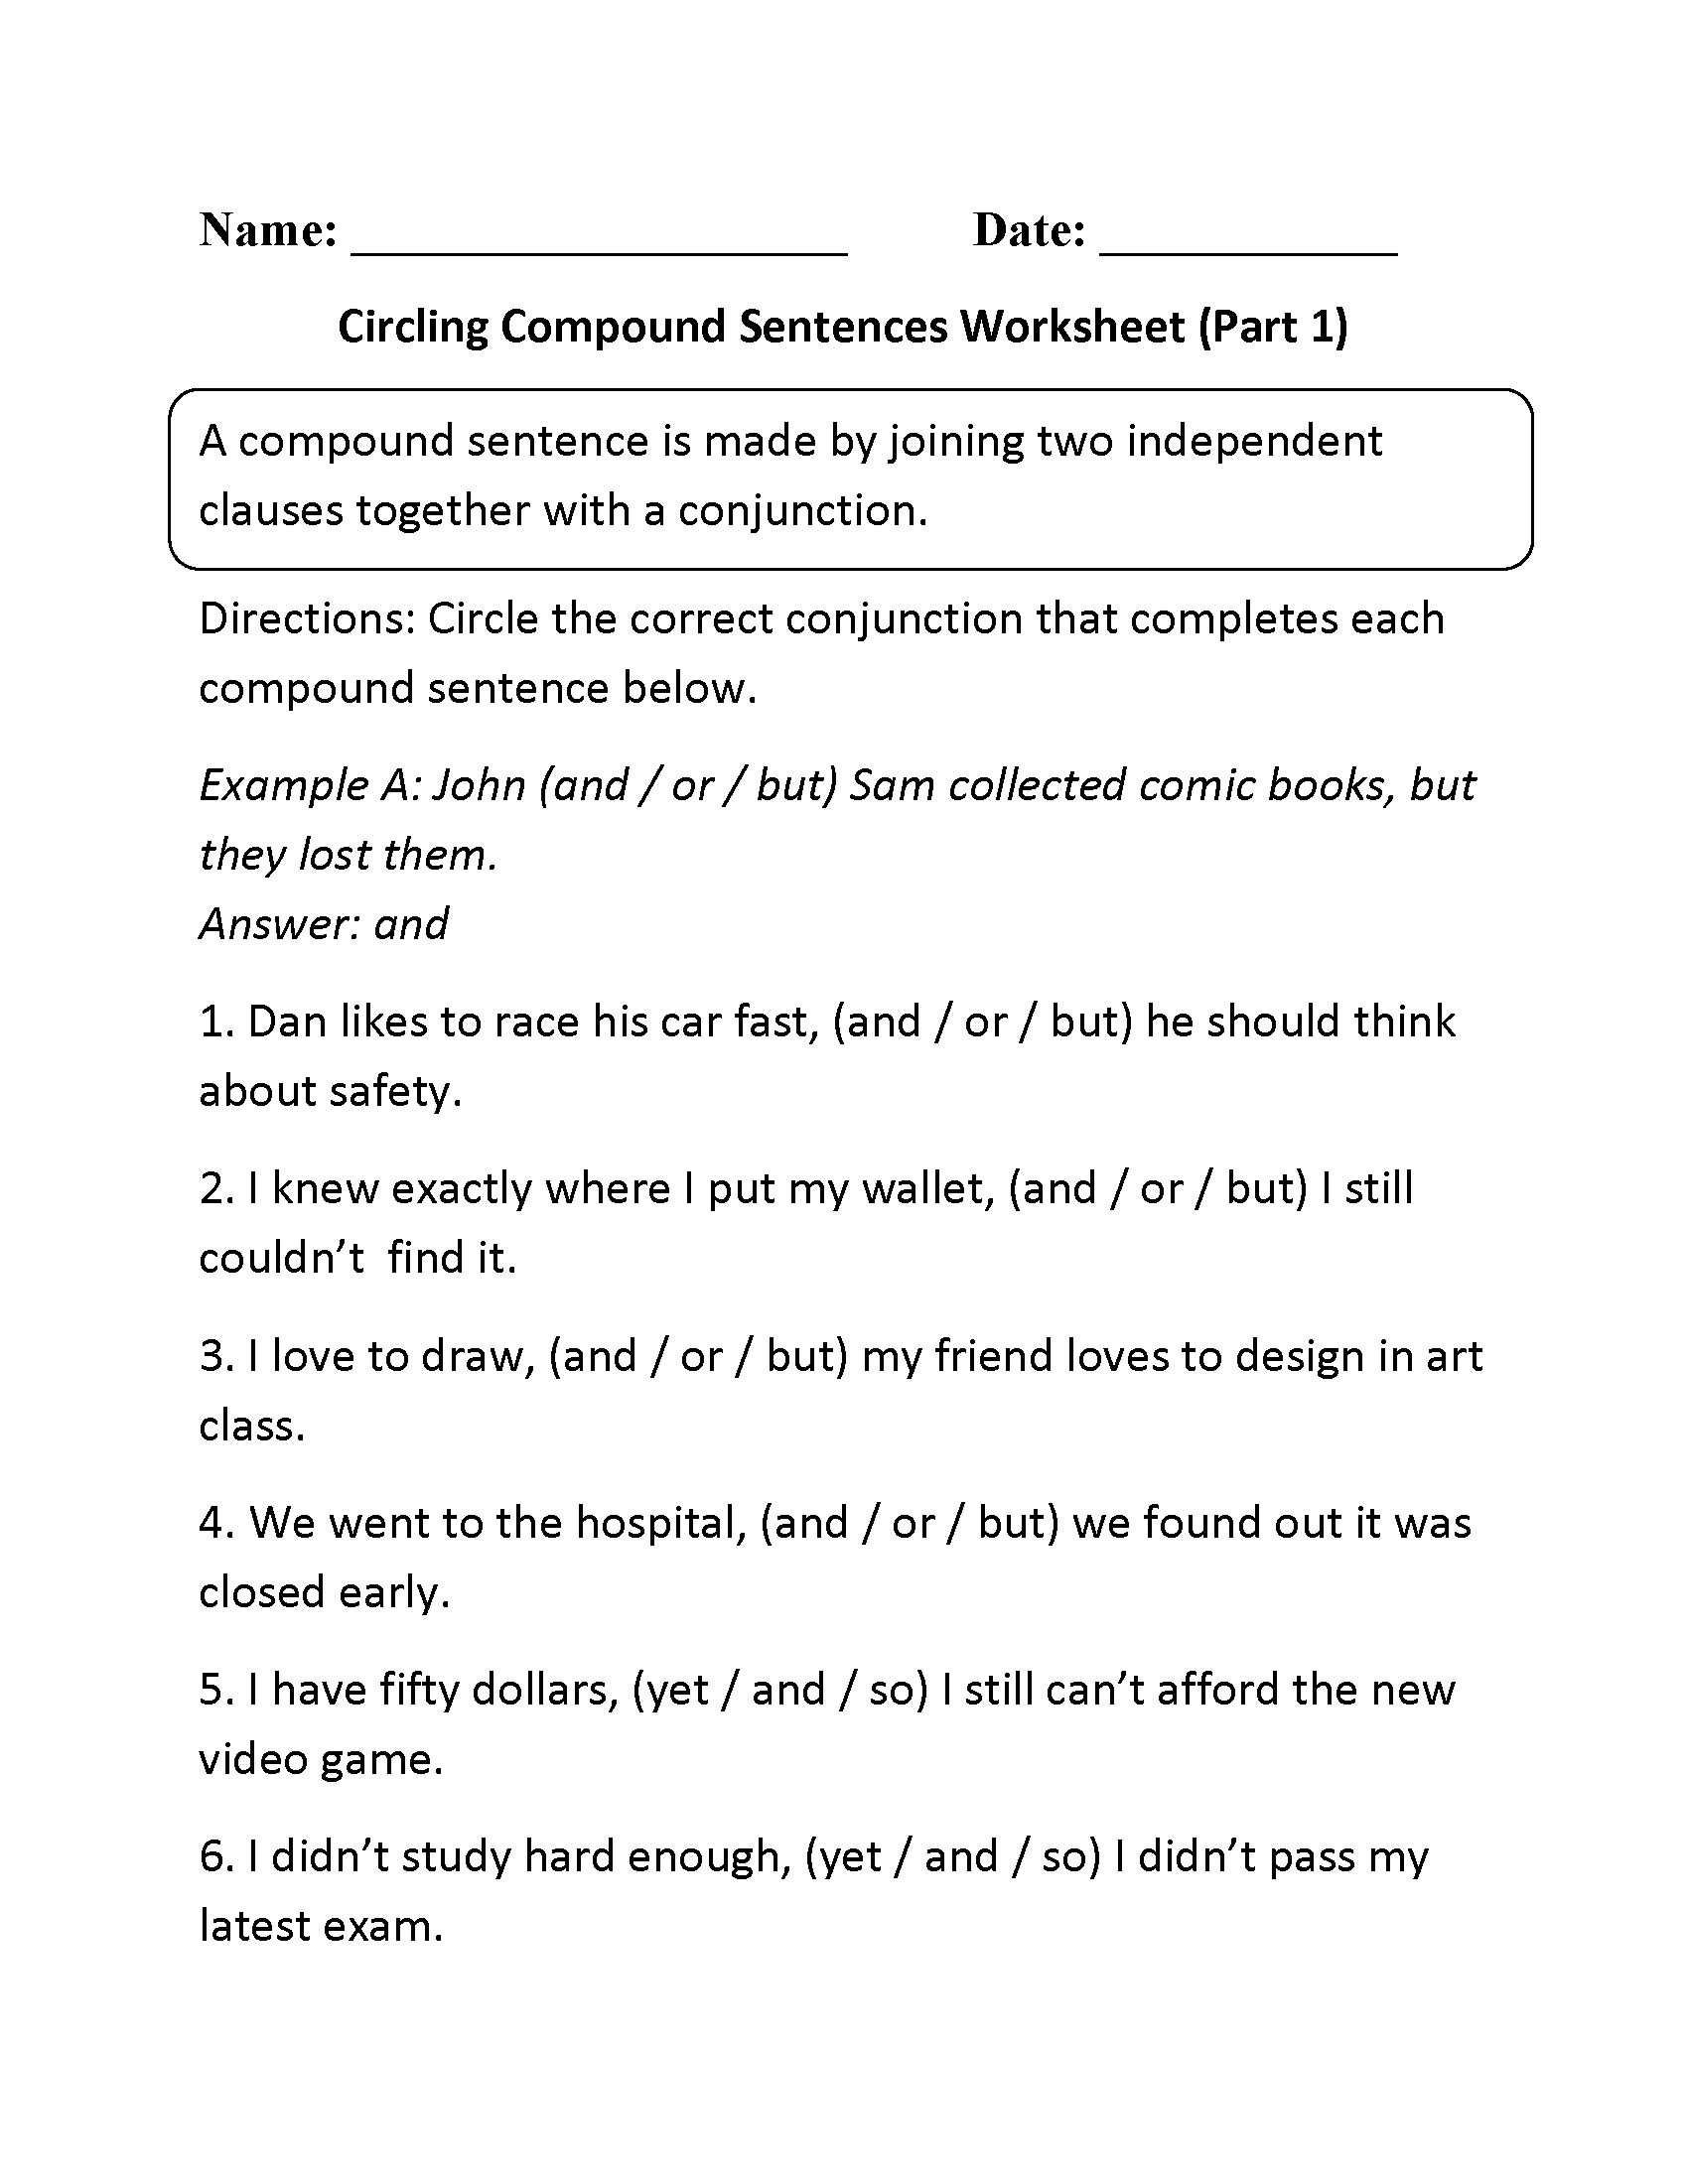 Making Compound Sentences Worksheets Worksheet for Mas In Pound Sentences